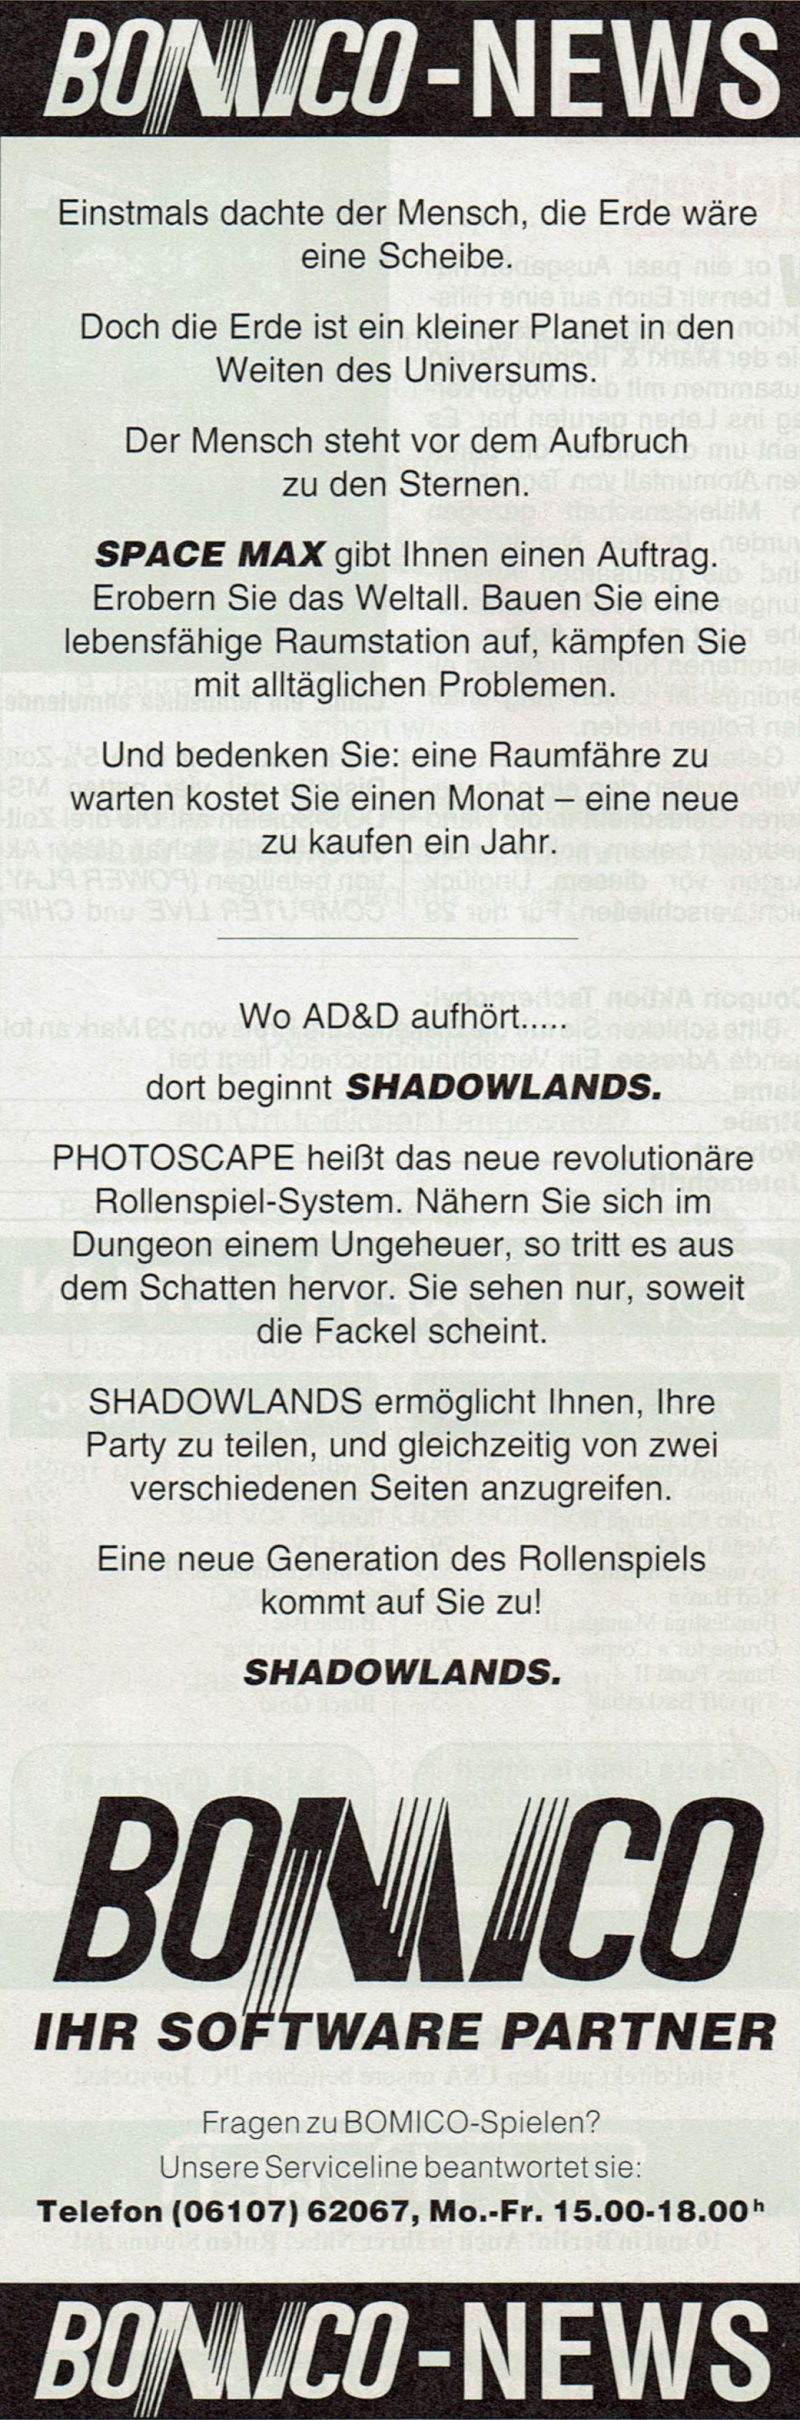 Shadowlands Magazine Advertisement